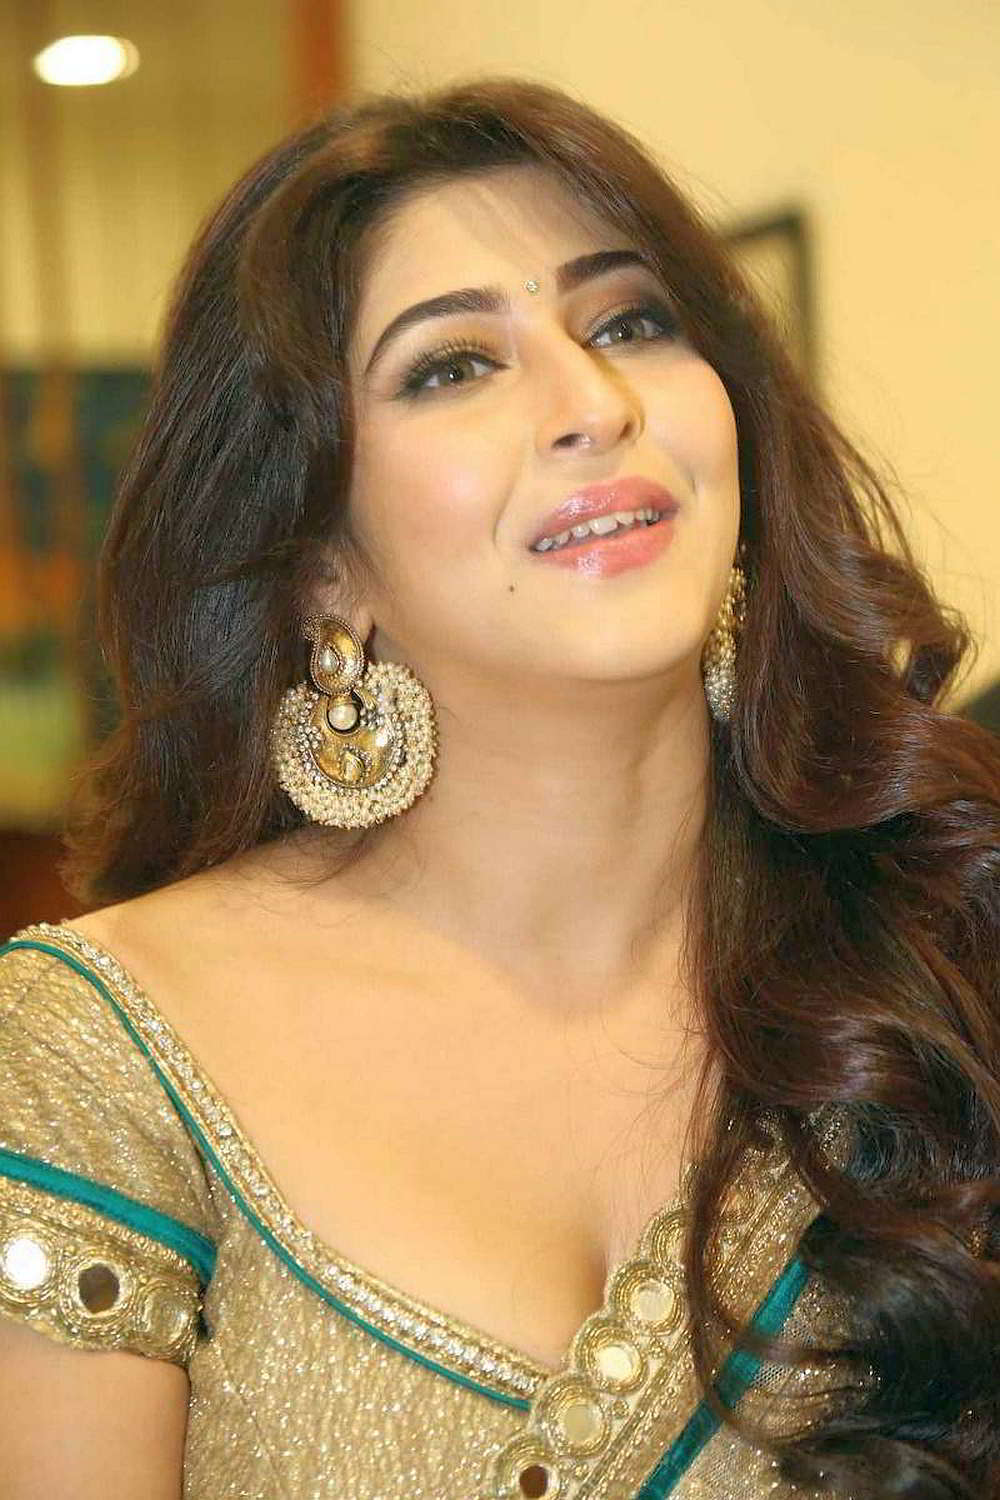 Sonarika Bhandoria Super Cute Beauty in Saree Spicy Pics